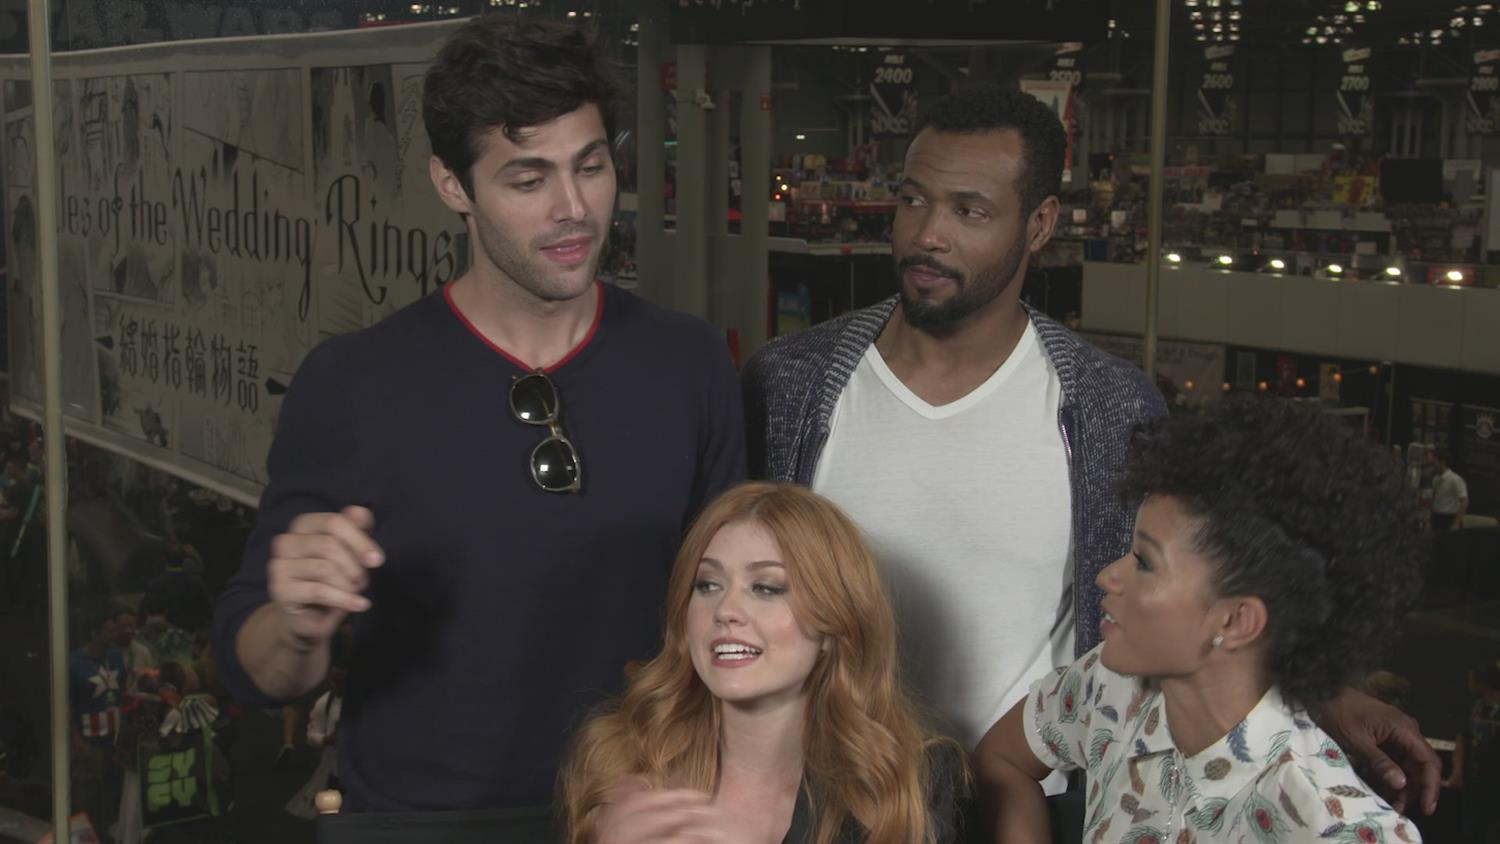 Shadowhunters Cast Preview Season 3 and New Couplings in Totally Charming Way